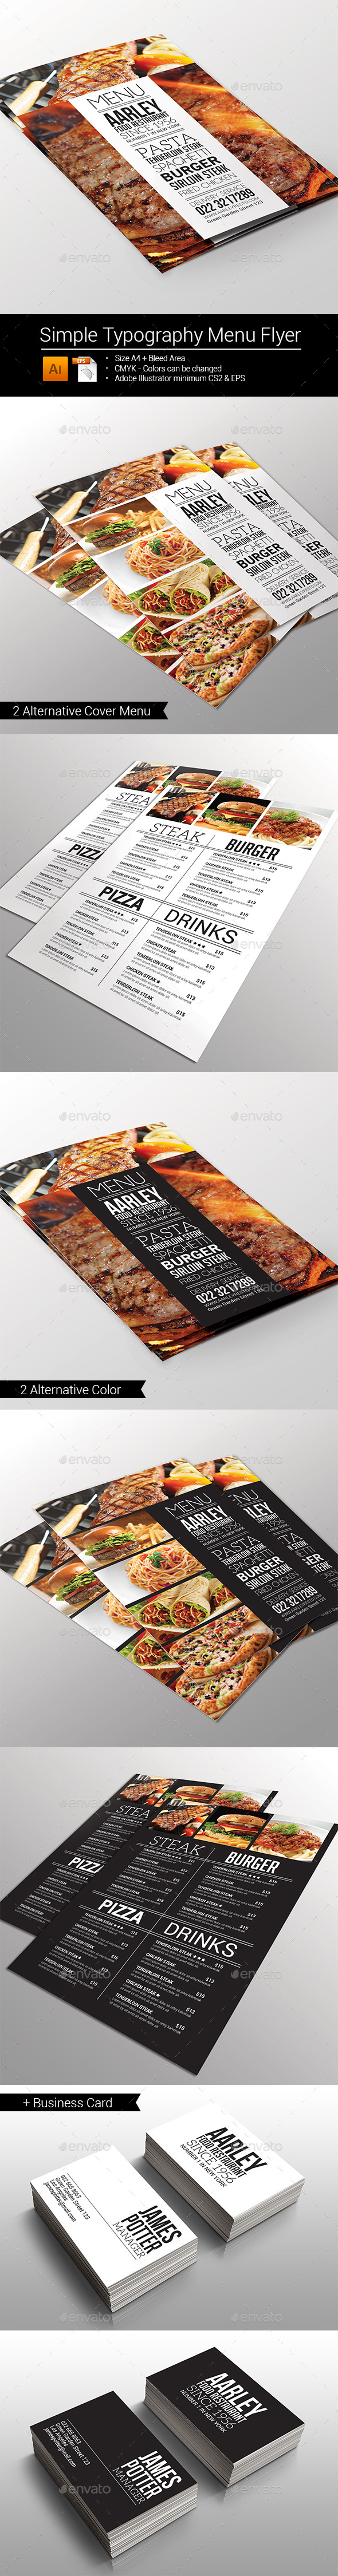 GraphicRiver Simple Typography Menu Flyer 10013533